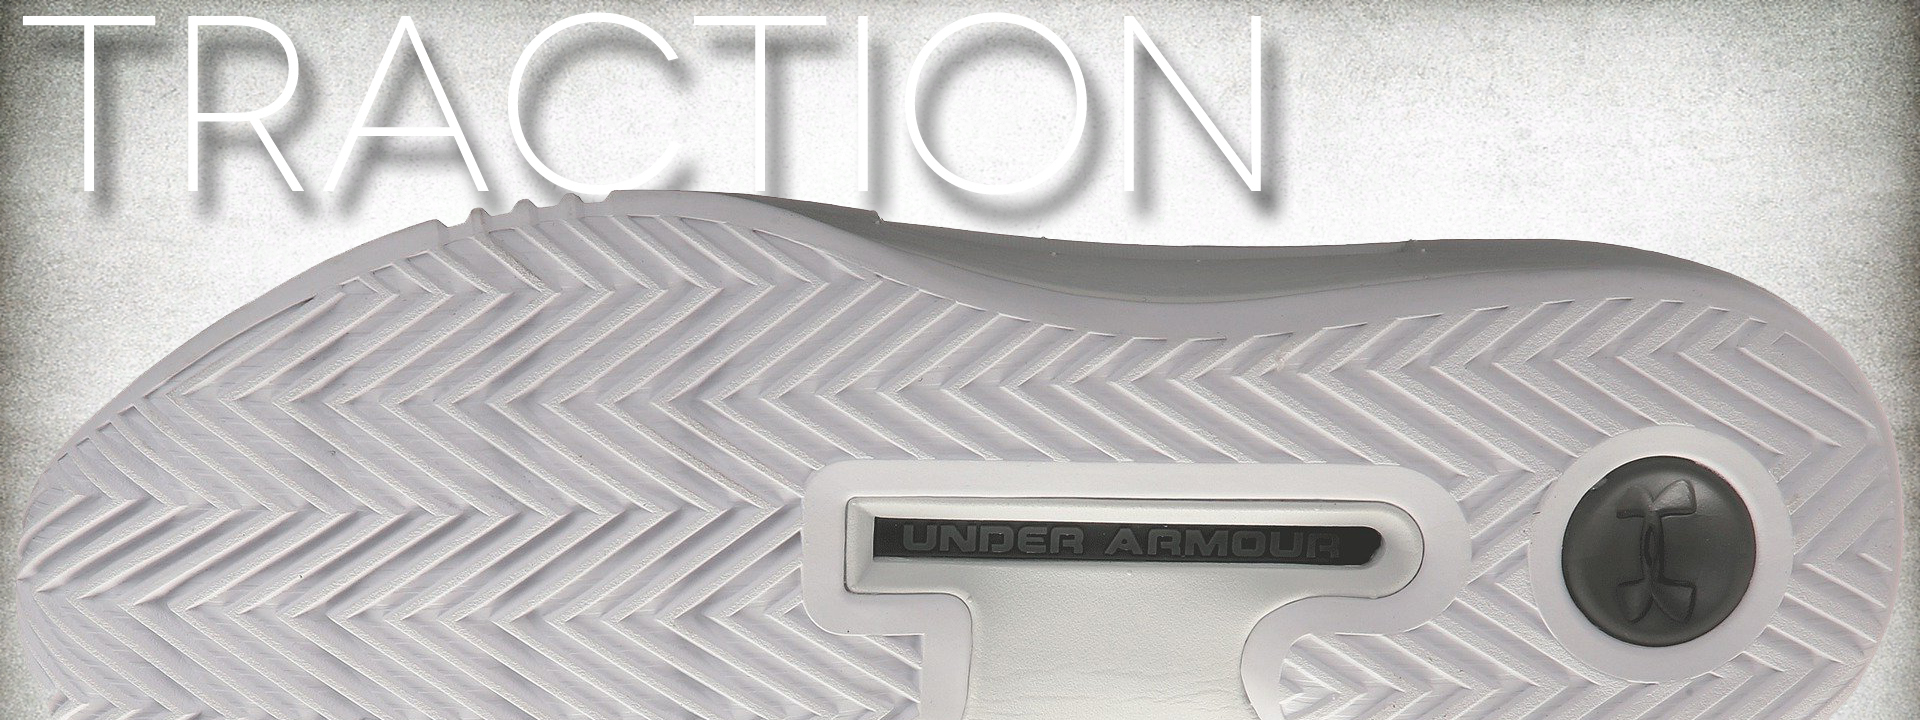 Under Armour Heat Seeker Performance Review traction